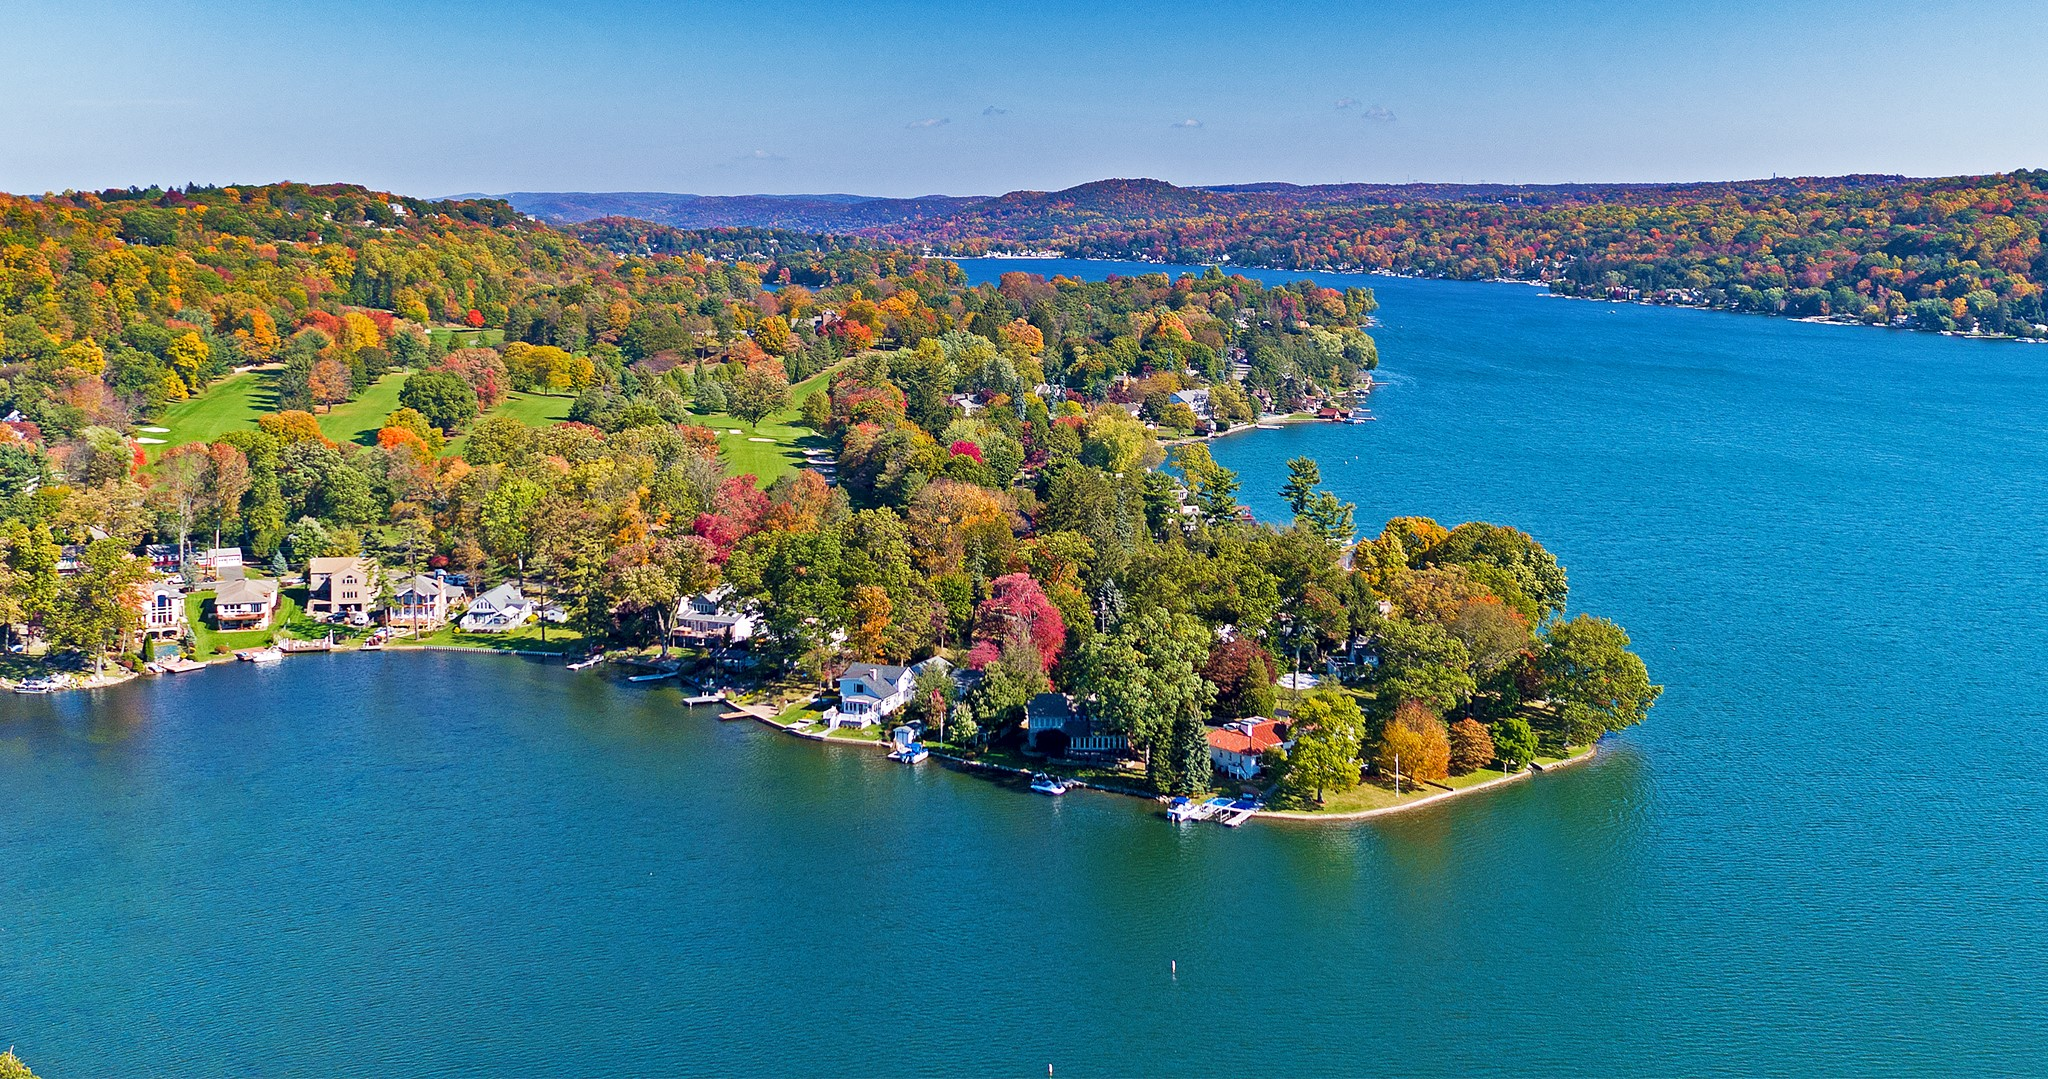 Imagine life on beautiful Lake Mohawk!